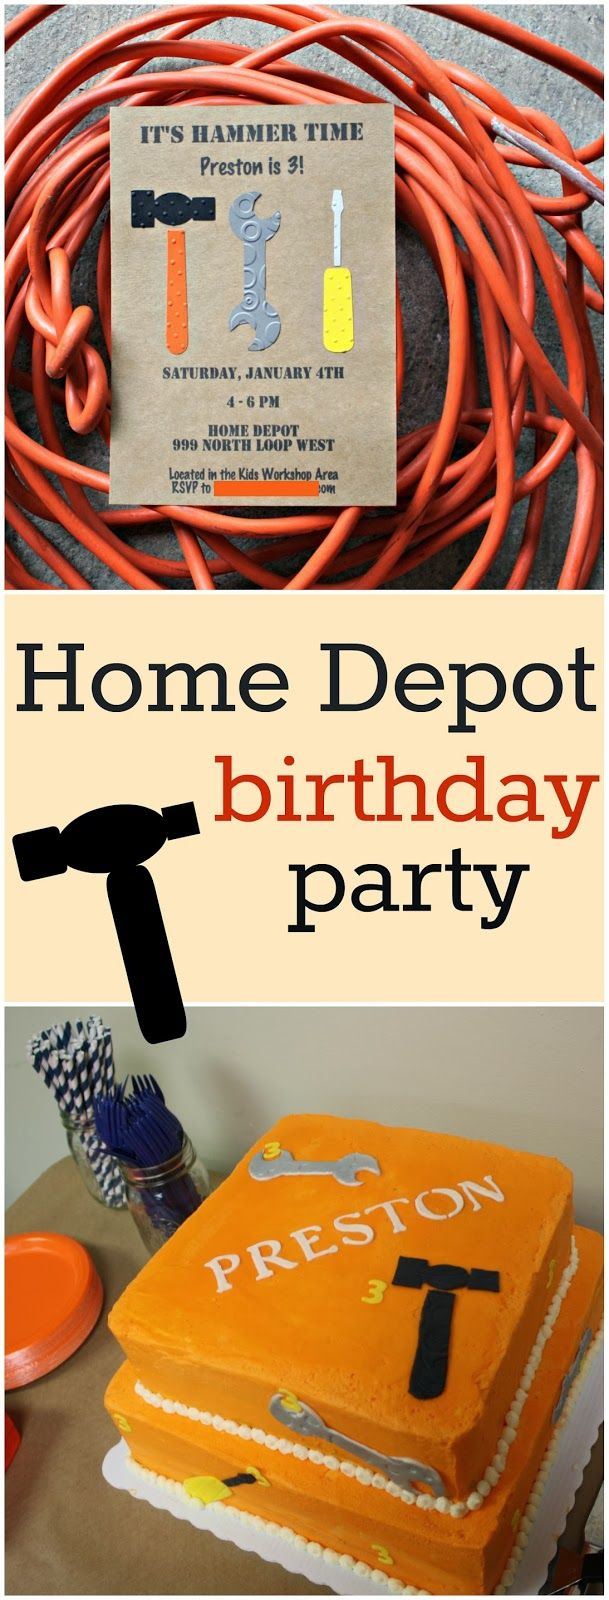 Home Depot birthday party